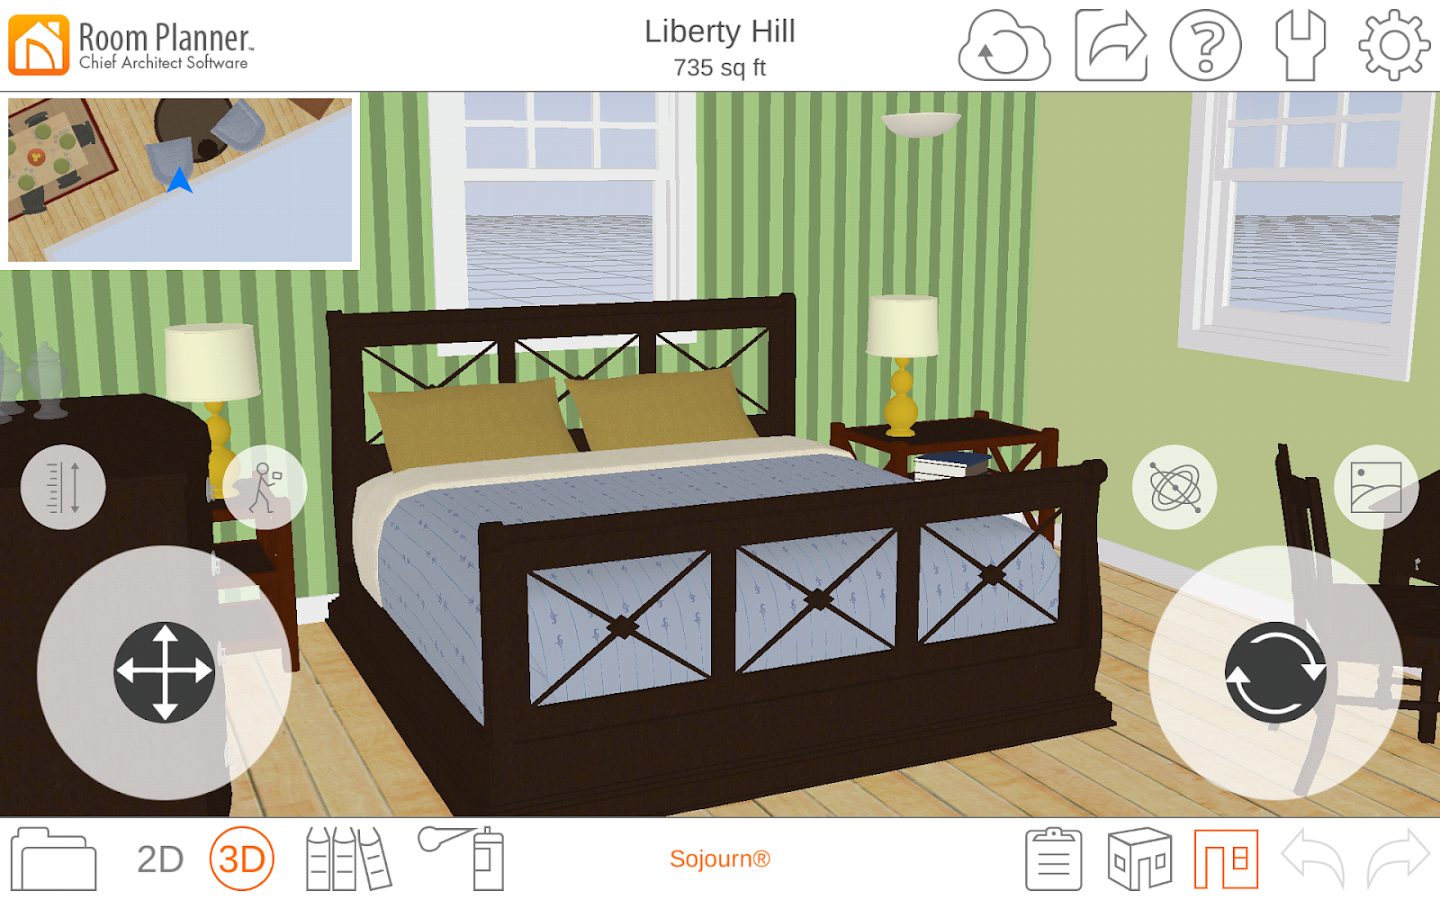 Room Planner Home Design: captura de pantalla